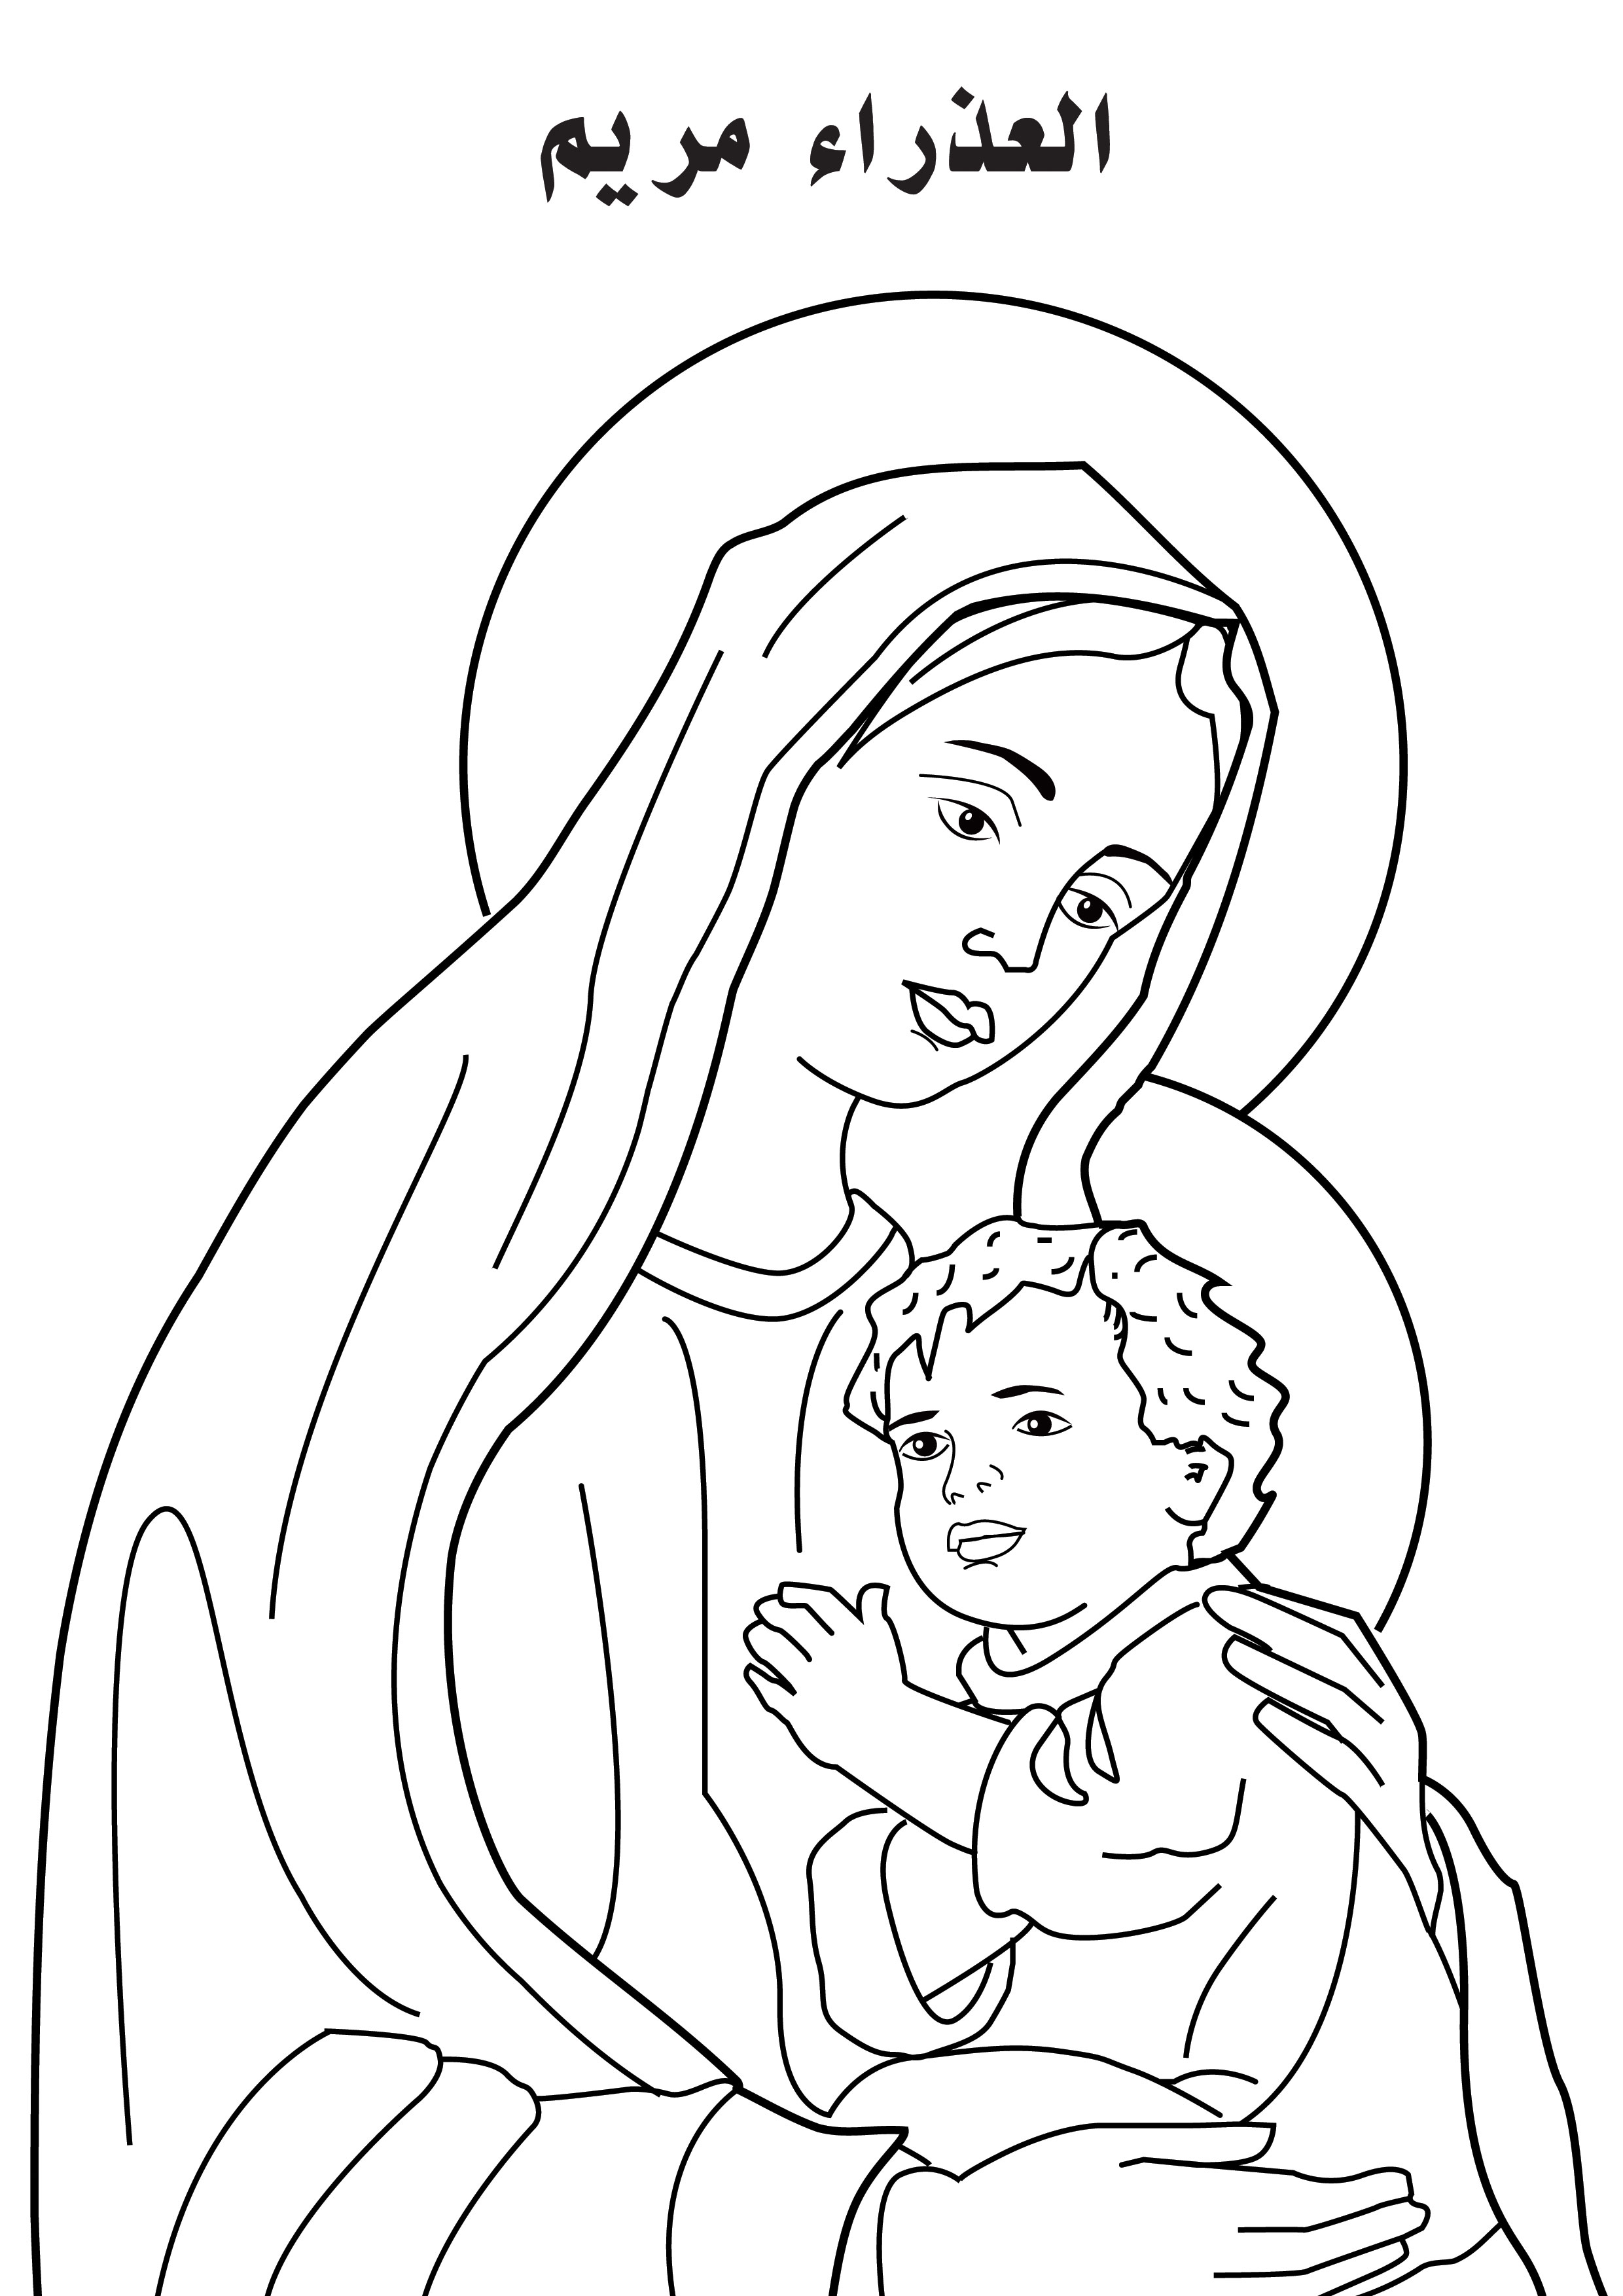 Olive Branch Tutorial also Youkai Watch Coloring Pictures together with Broly Coloring Pages further Mom And Child Drawing further 004 Eagle Coloring Pages. on coloring page of a medal